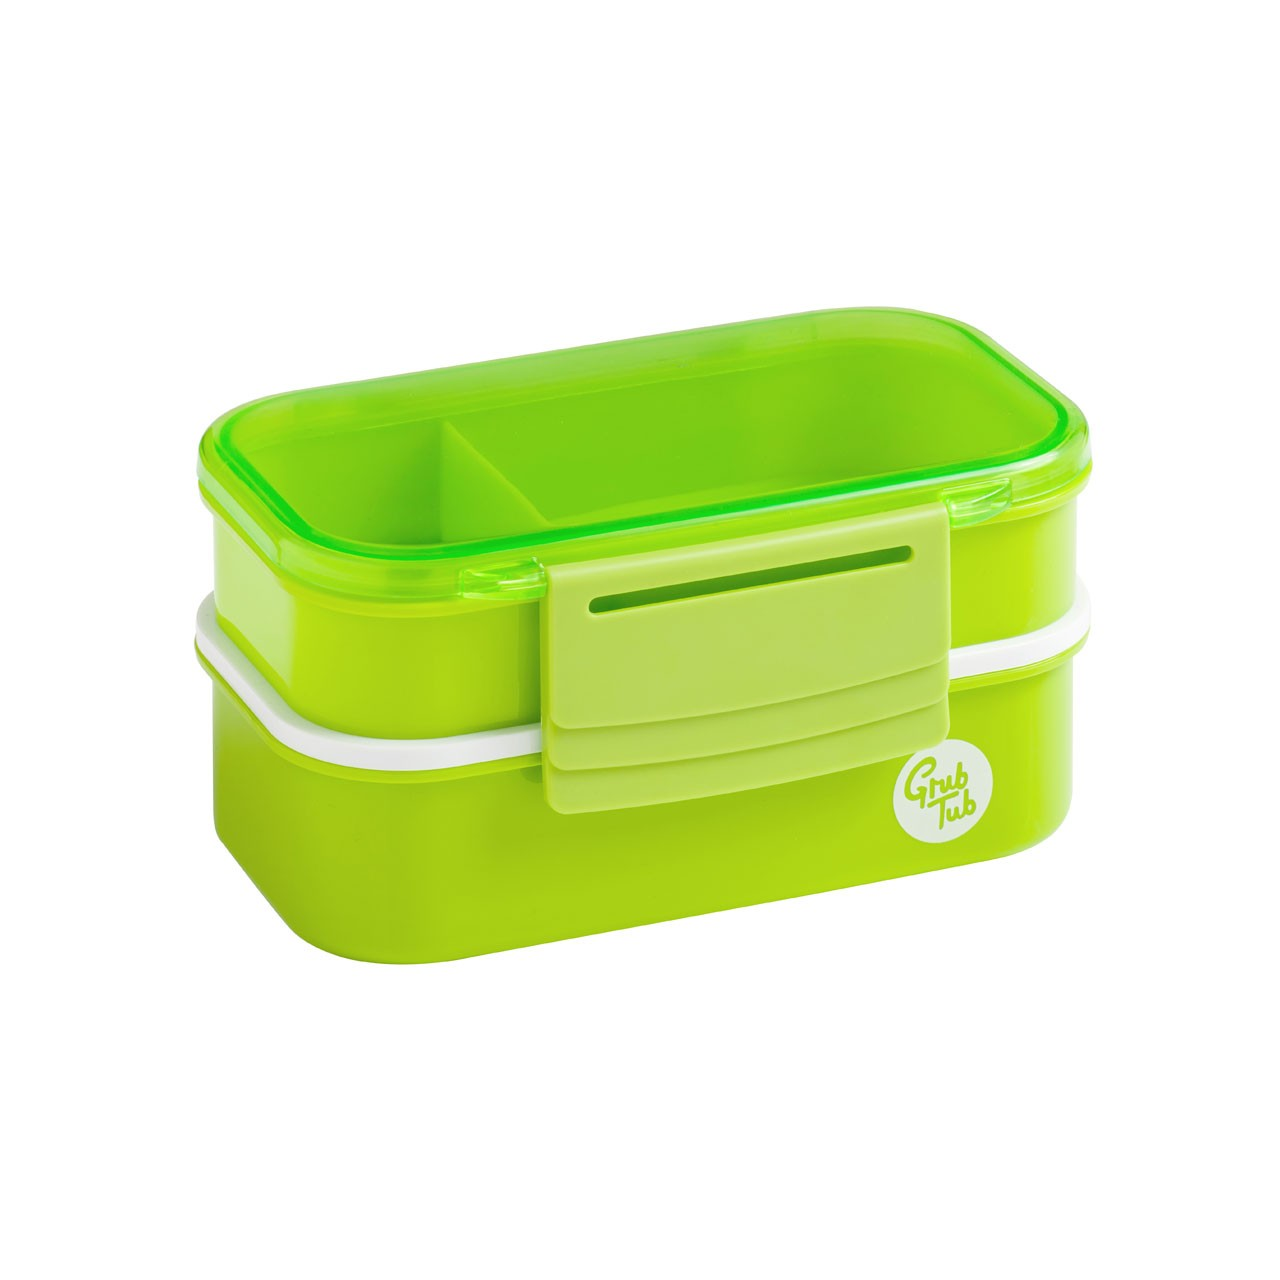 Grub Tub Lunch Box with 2 Containers and Cutlery - Green